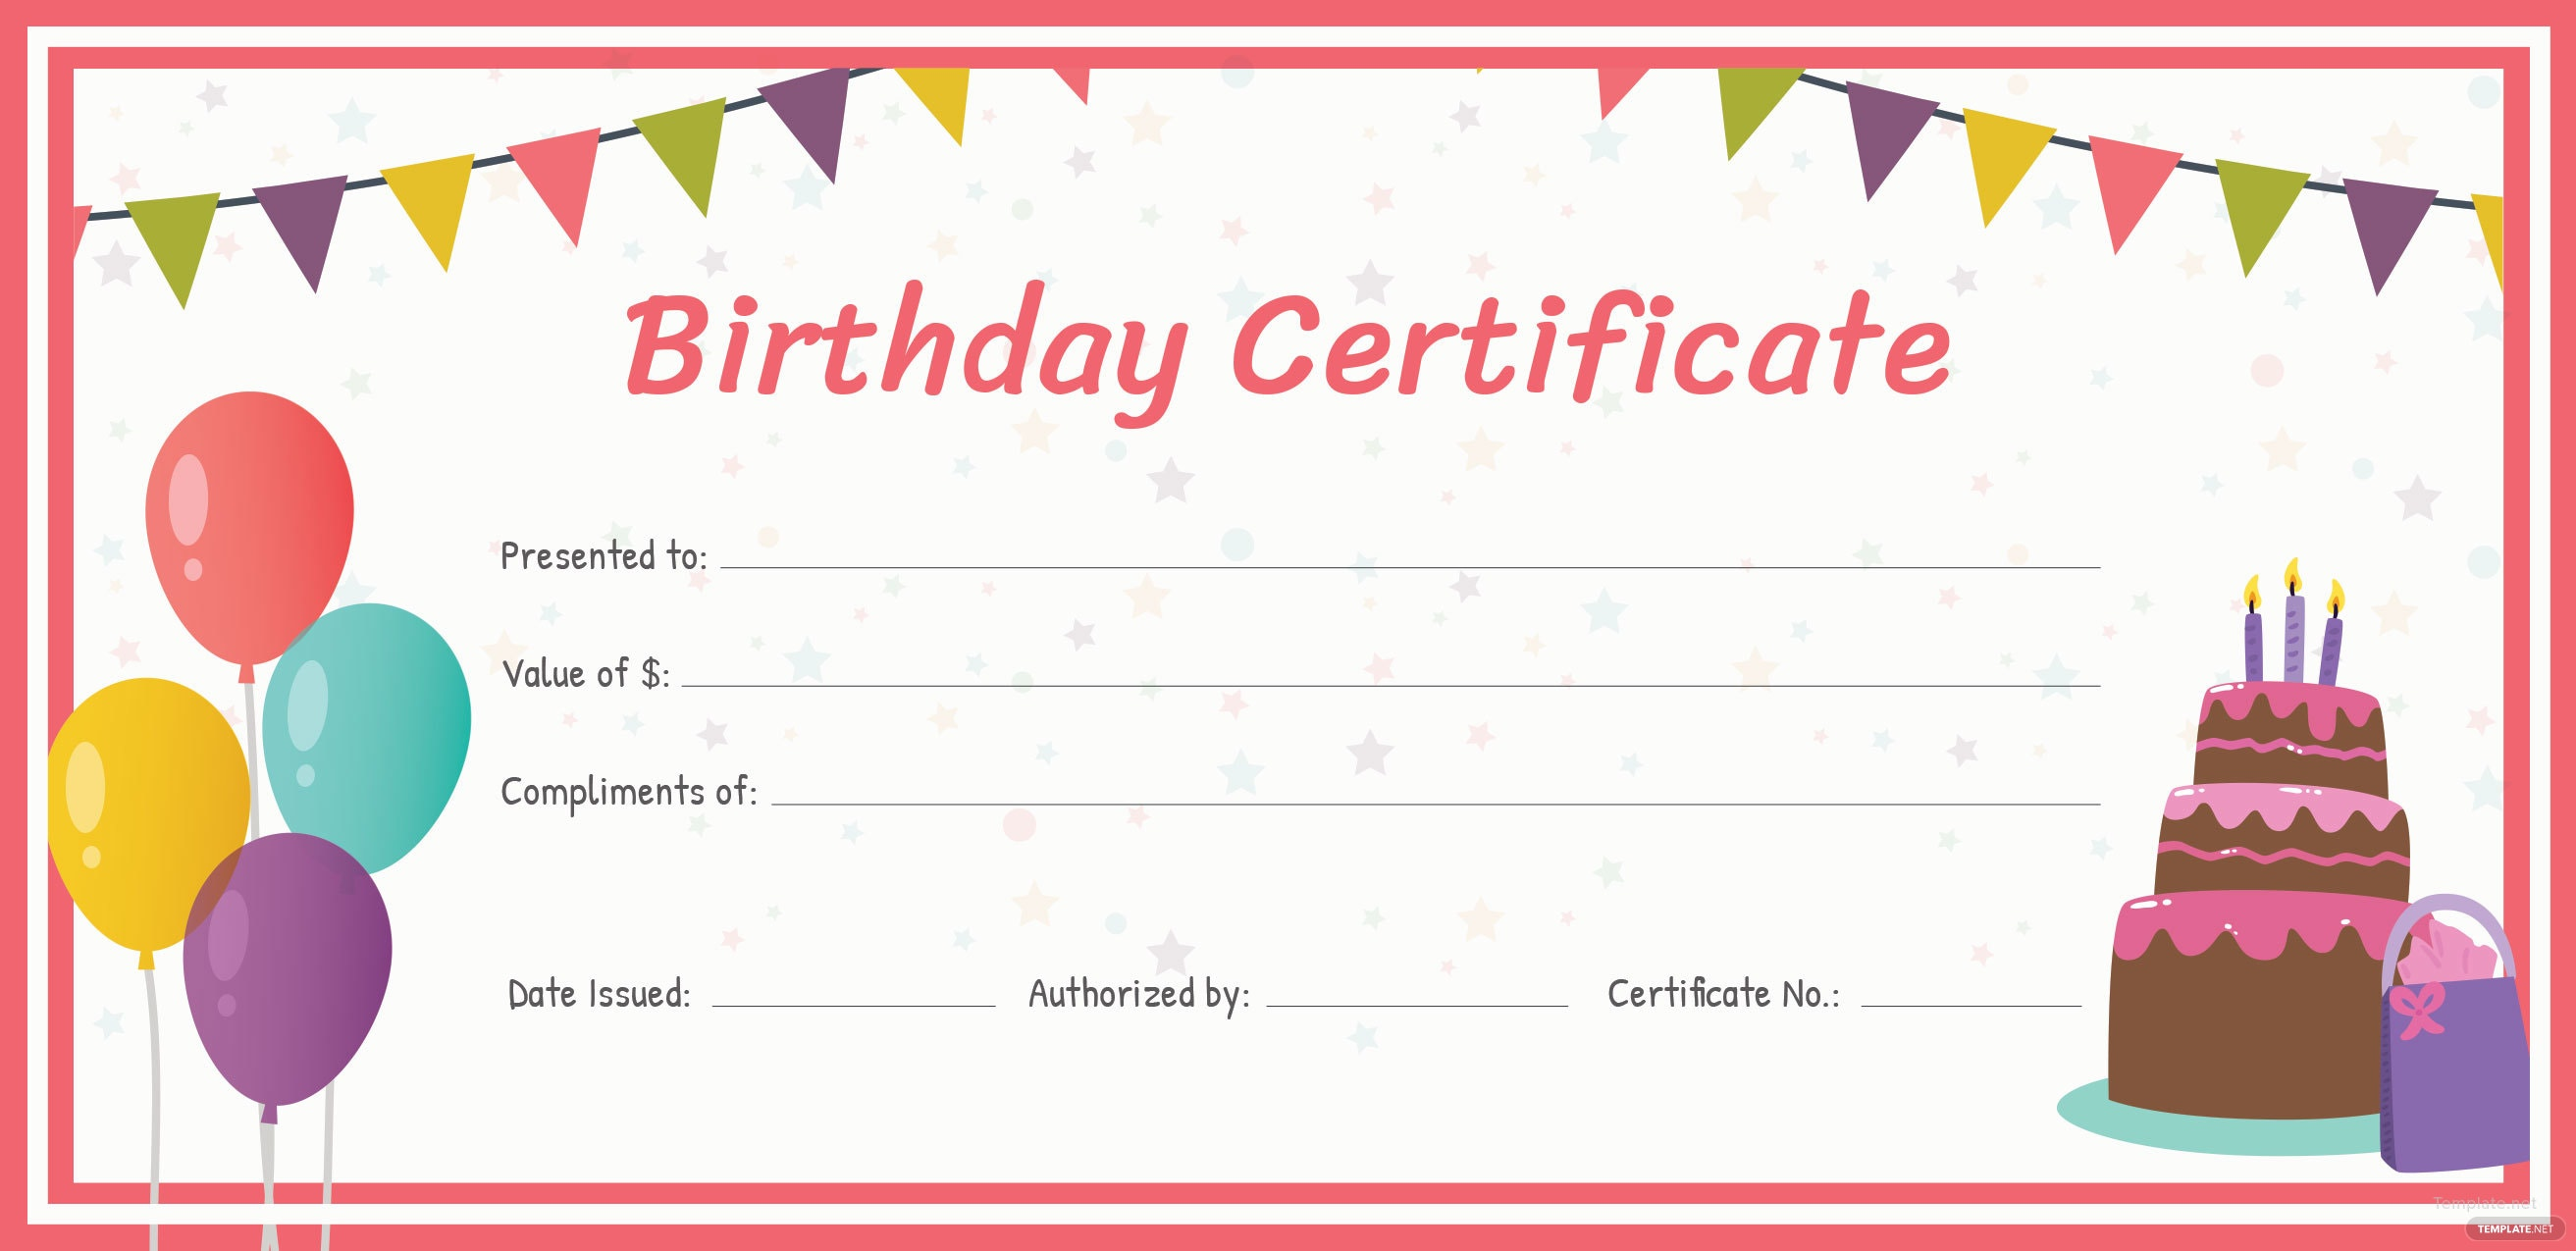 Free birthday gift certificate template in adobe for Printable gift certificate template